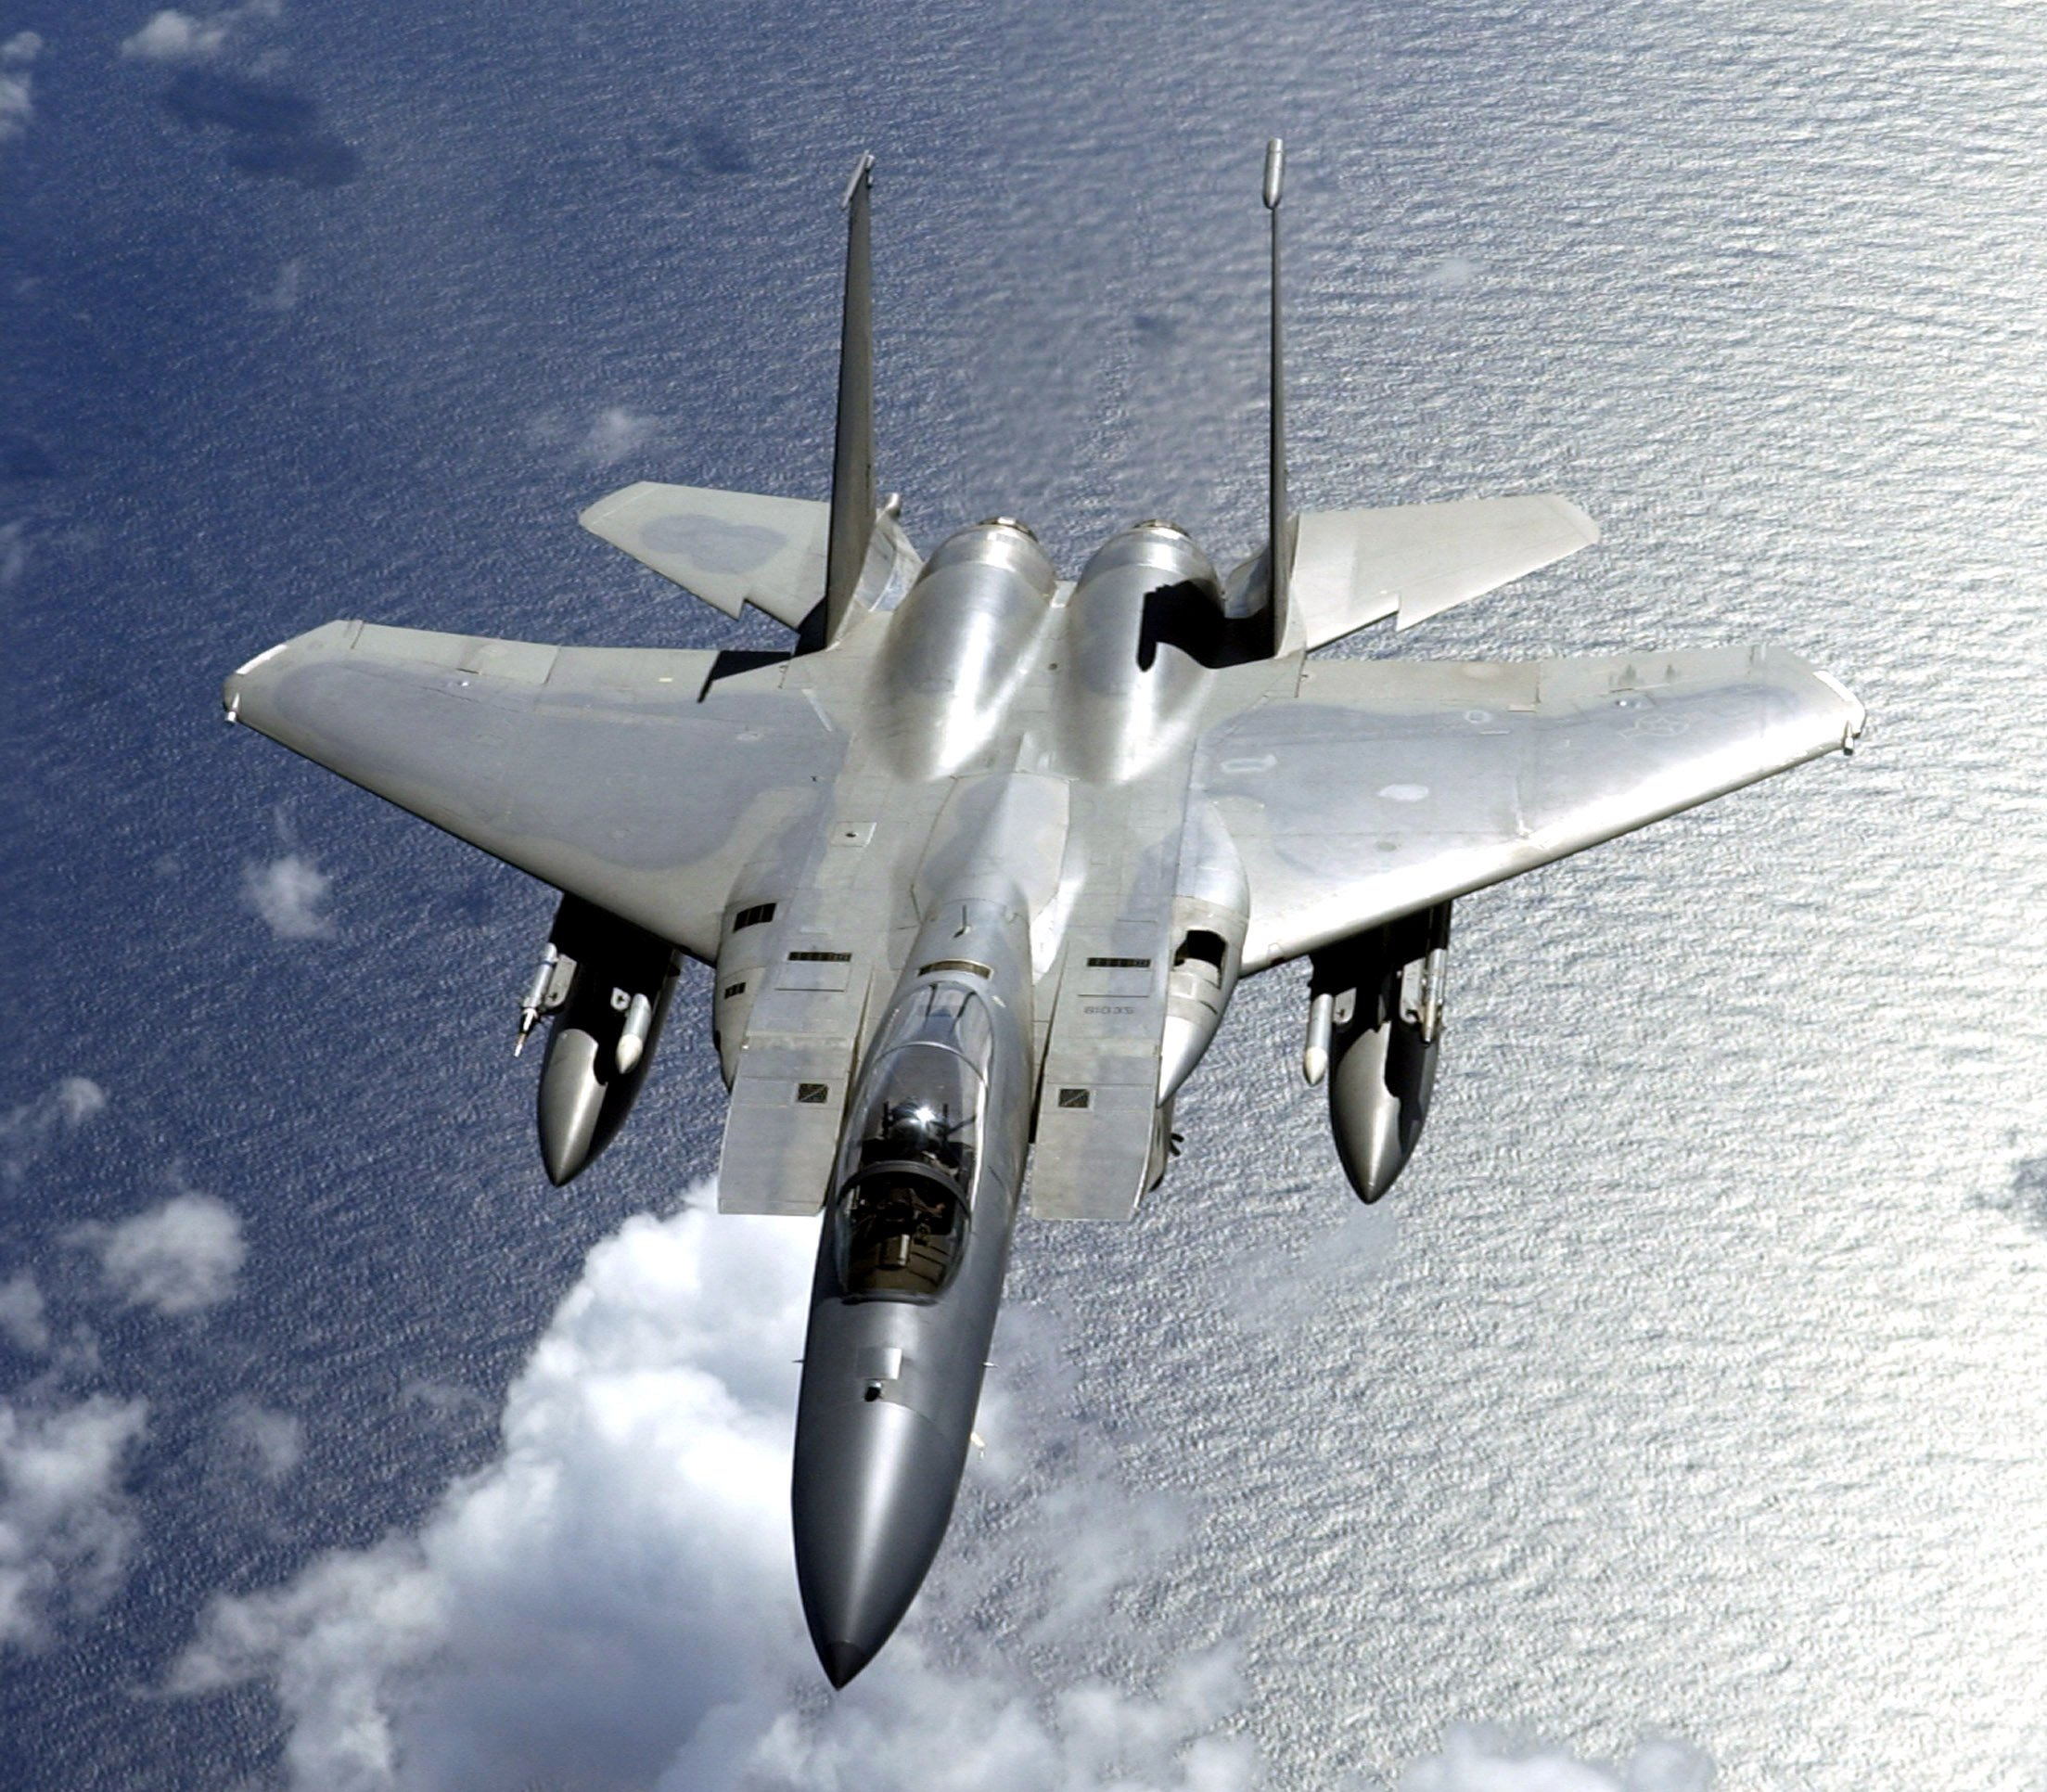 Jet Wallpaper: F-15 Fighter Jet Military Airplane Eagle Plane (37